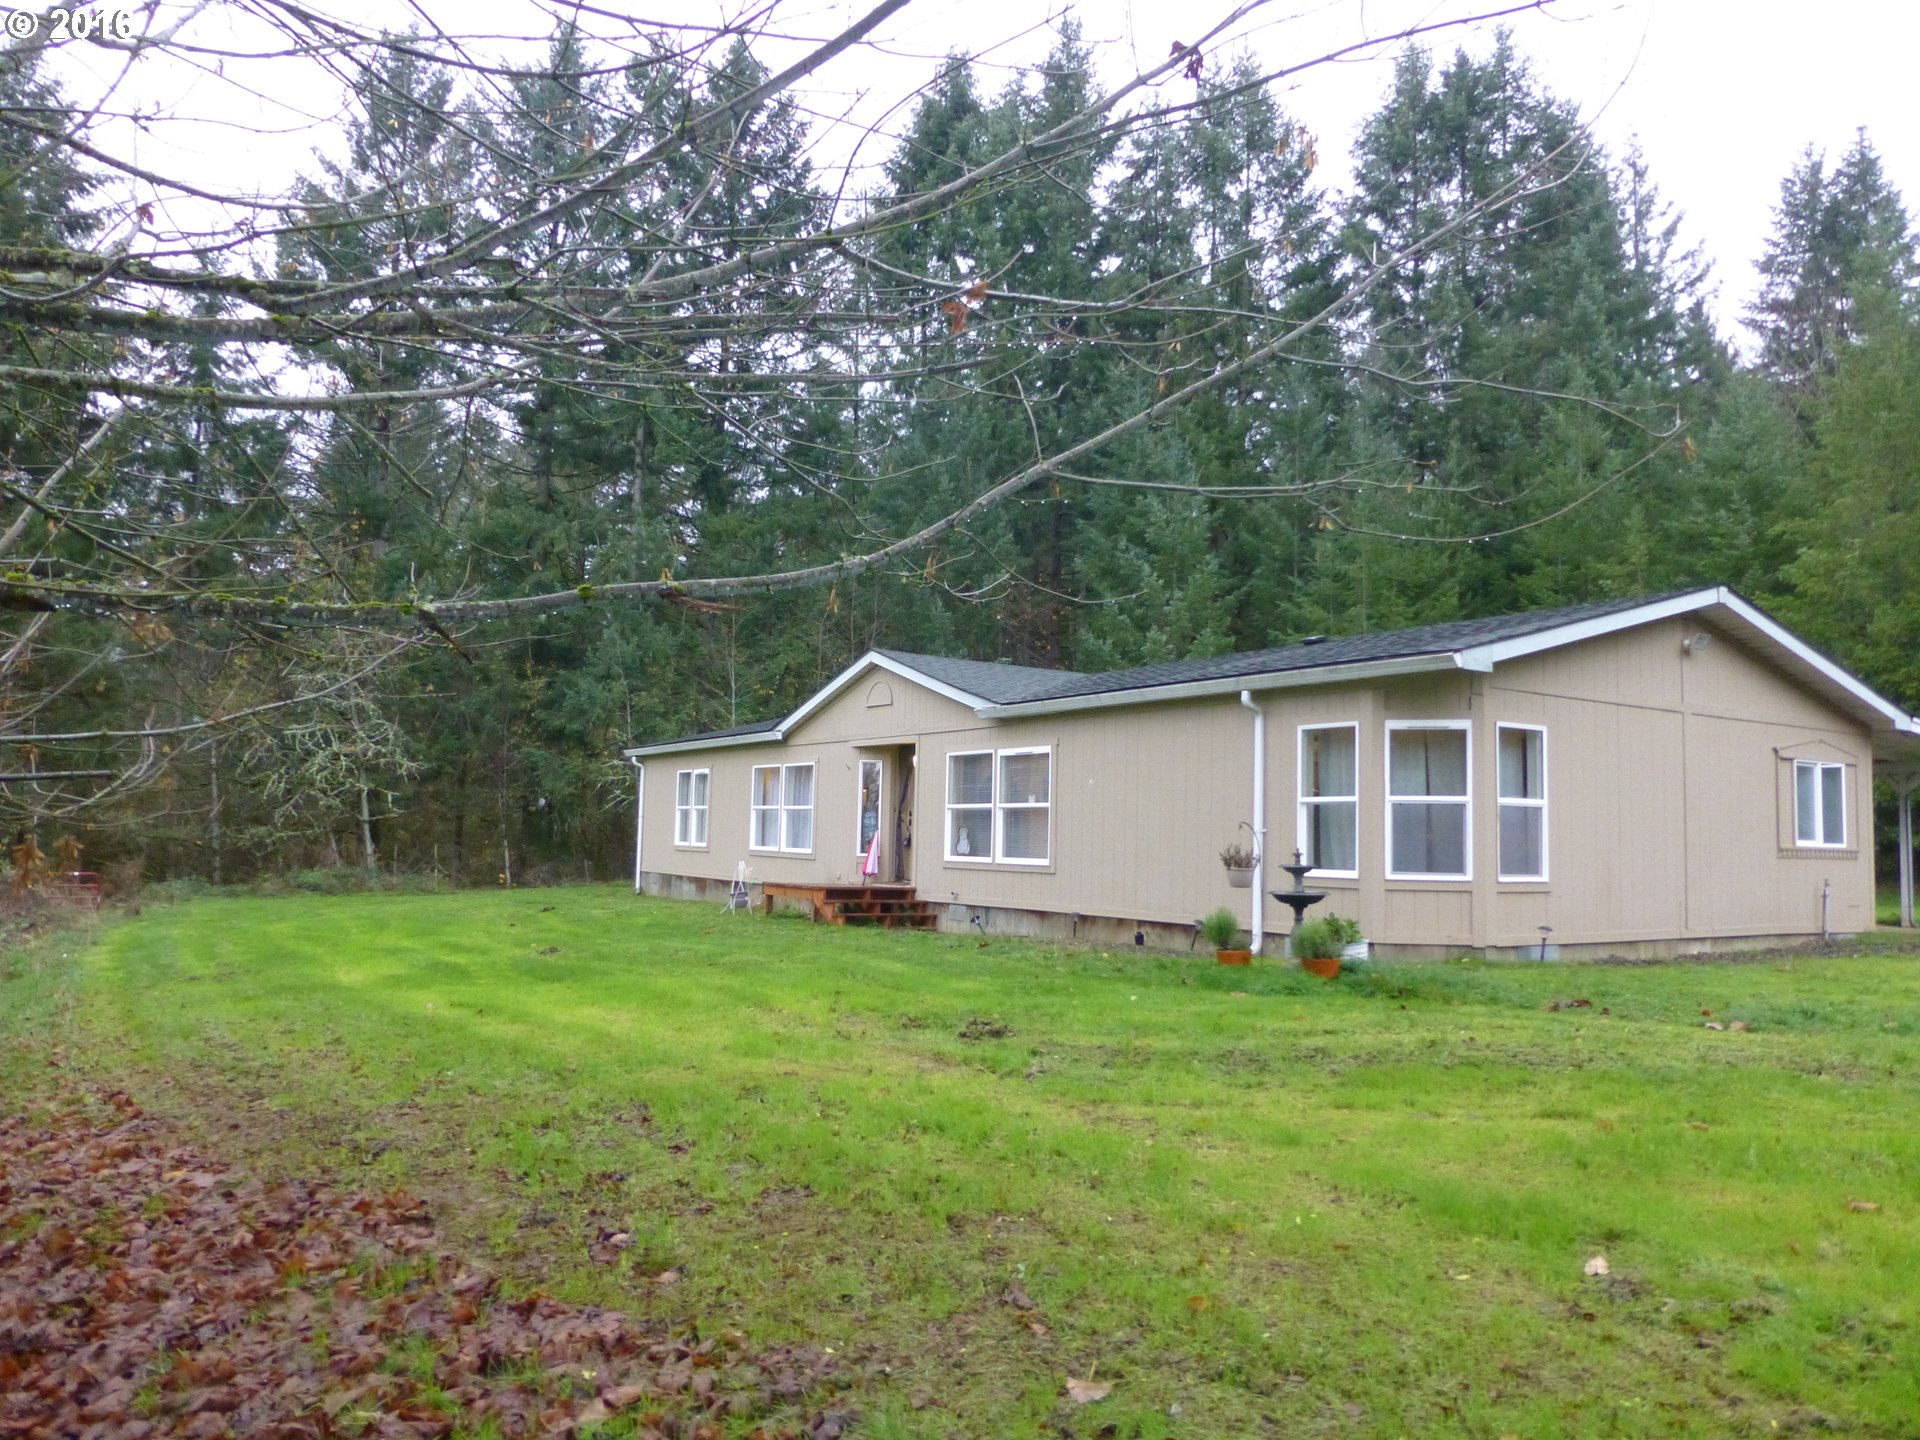 3306 NE 344TH ST, La Center, WA 98629